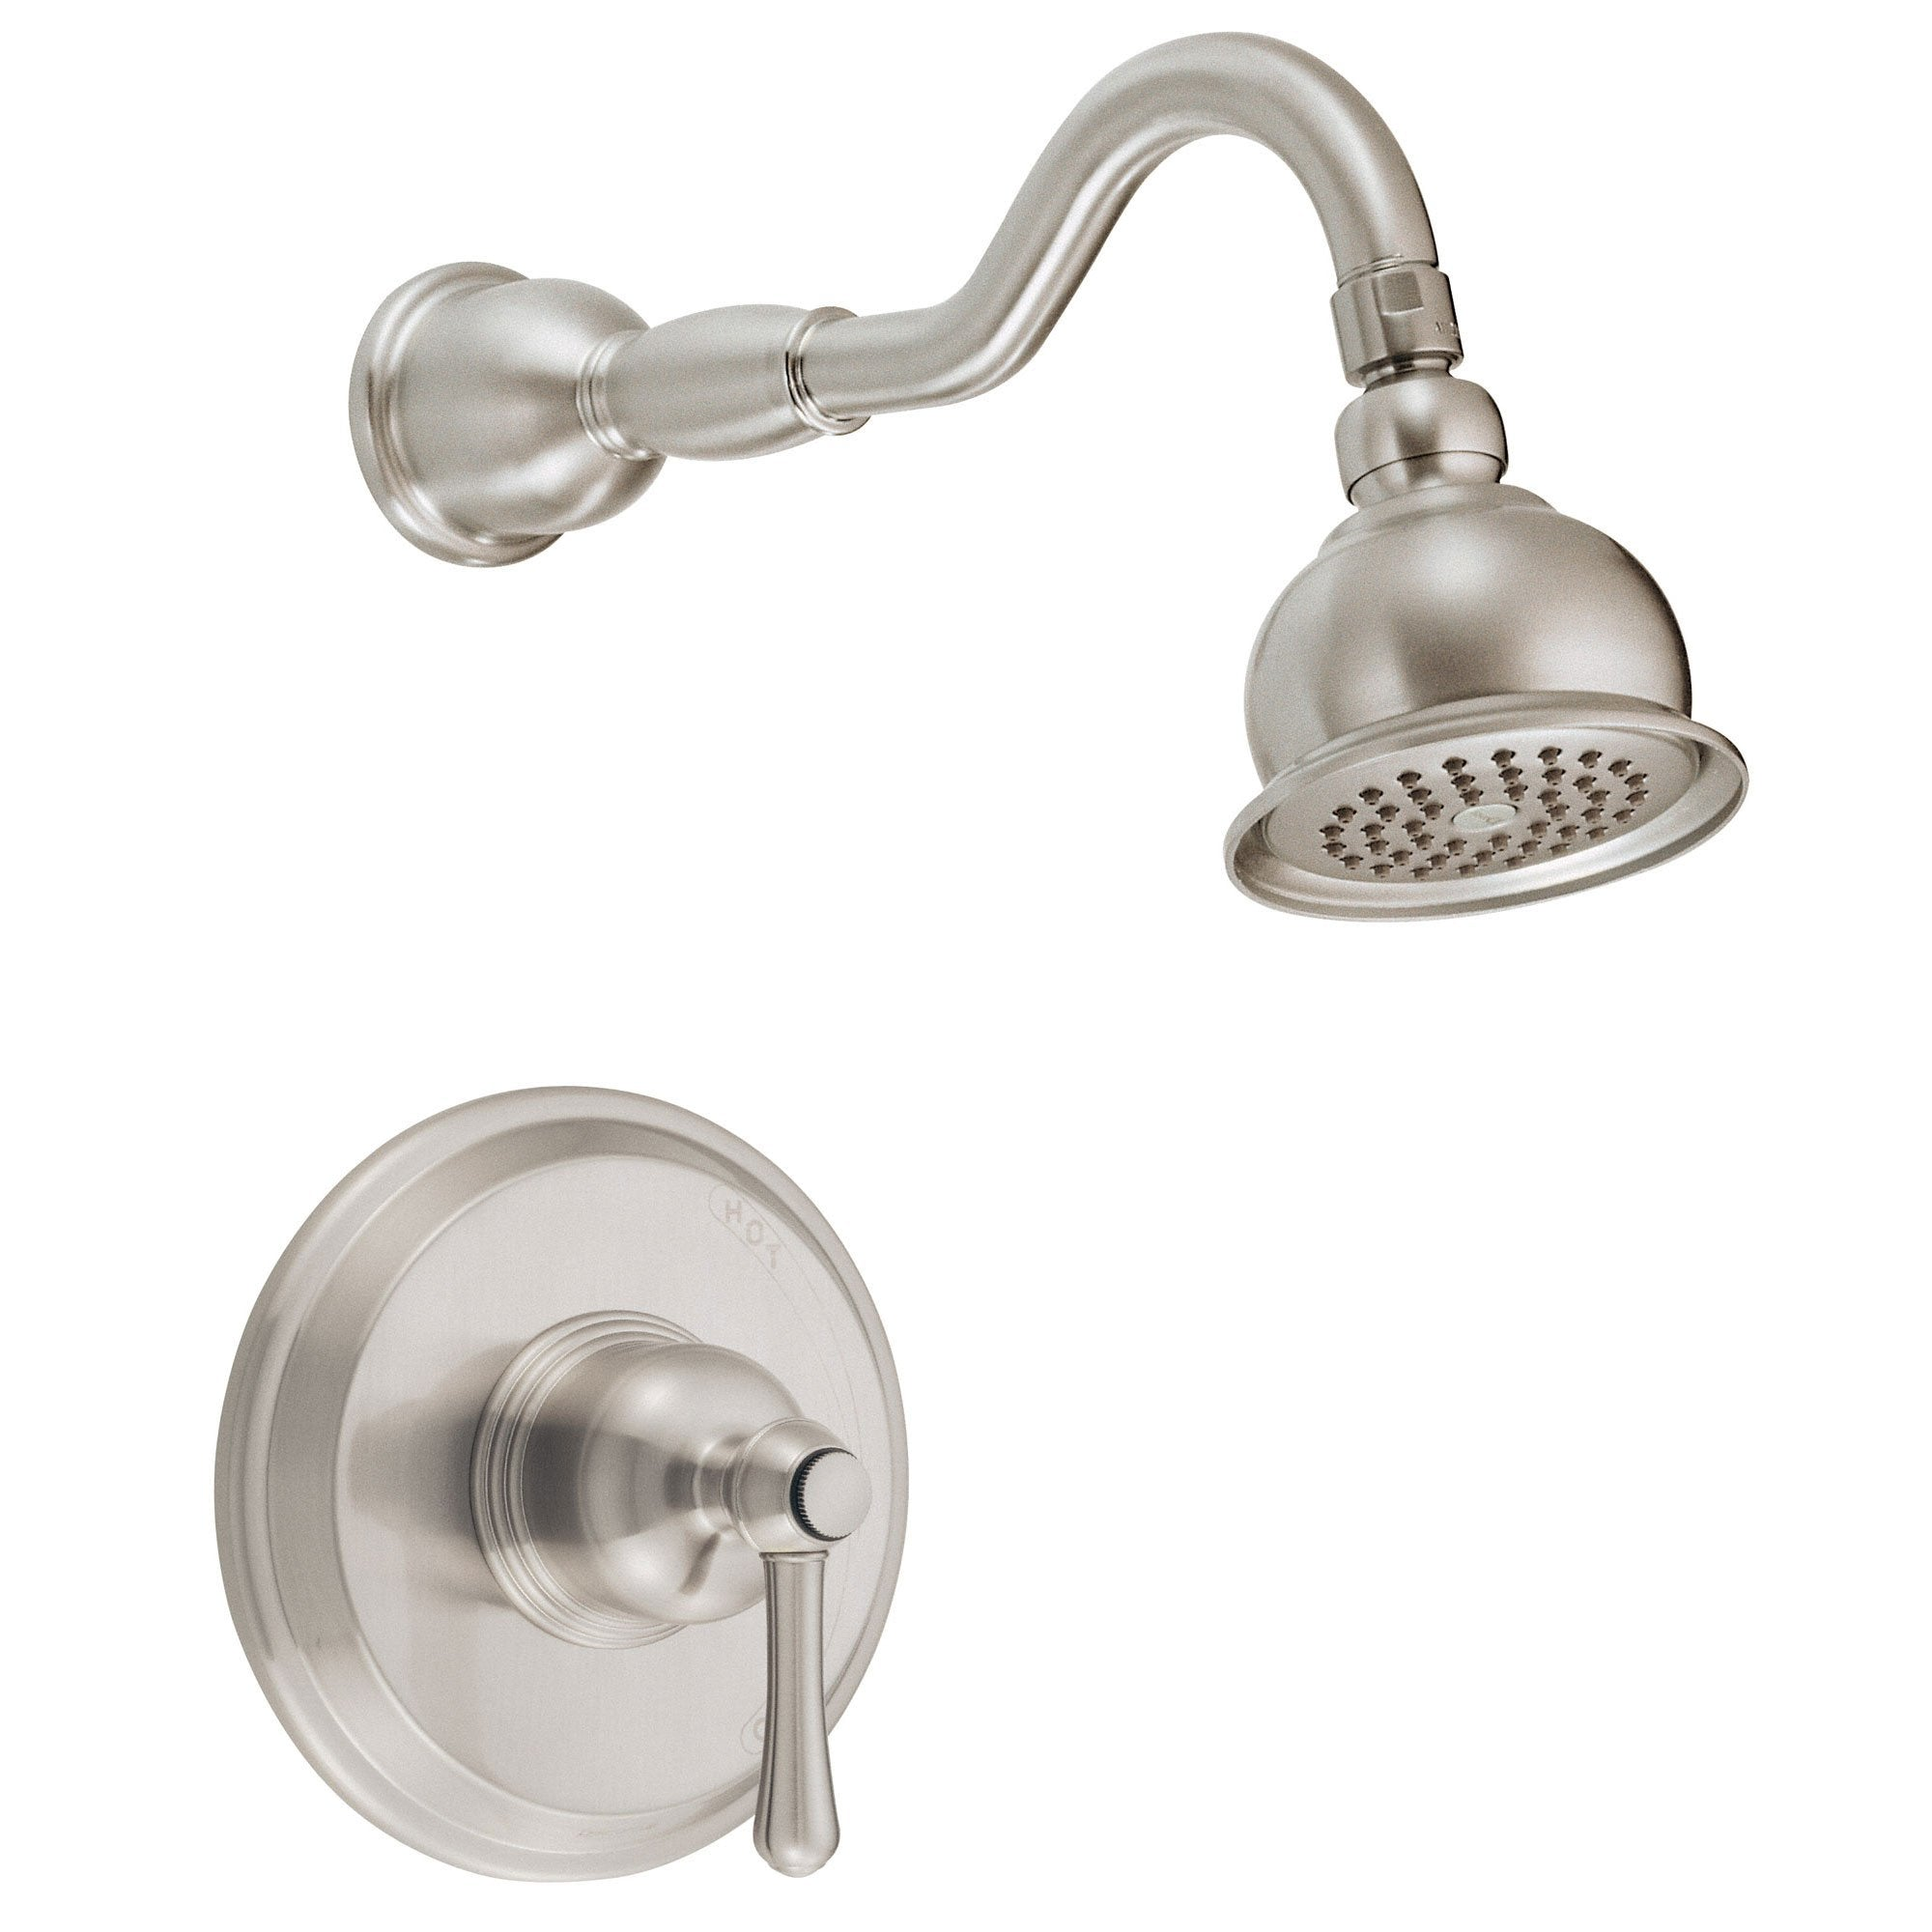 Danze Opulence Brushed Nickel Single Lever Handle Shower Only Faucet INCLUDES Rough-in Valve